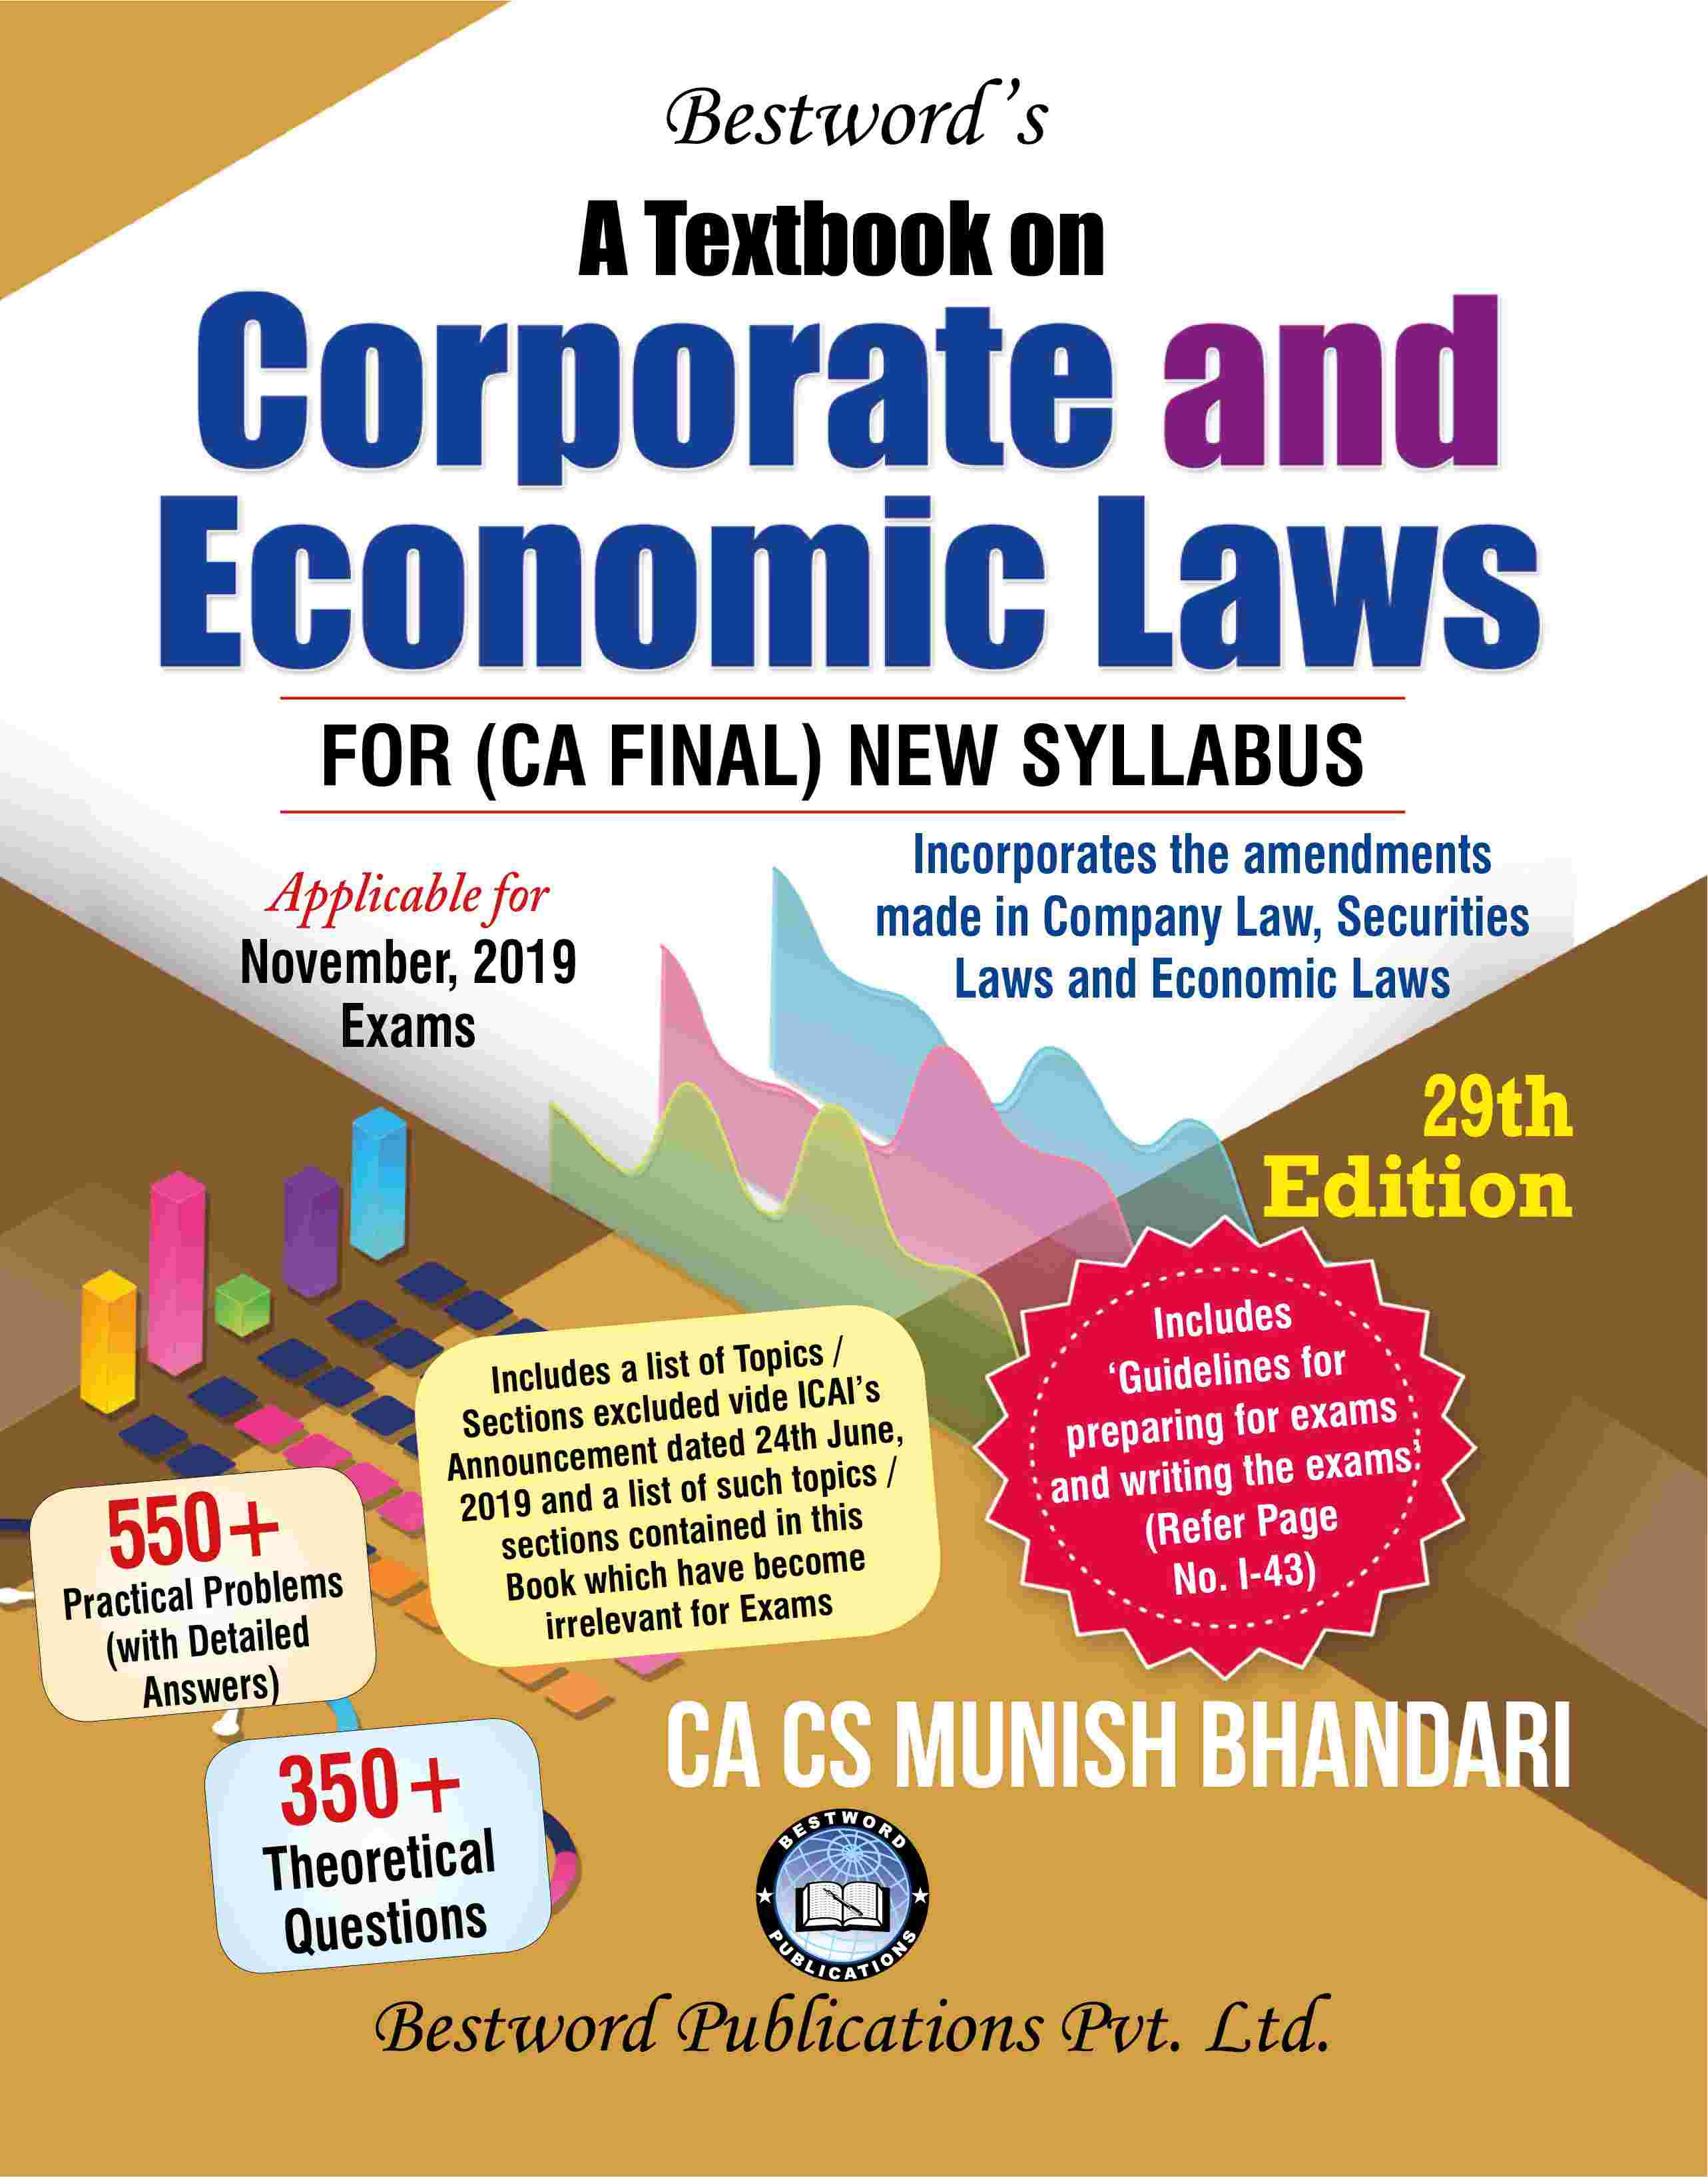 bestword's-a-textbook-on-corporate-and-economic-laws---by-ca-cs-munish-bhandari---29th-edition---for-ca-(final)-november,-2019-exams-(new-syllabus)